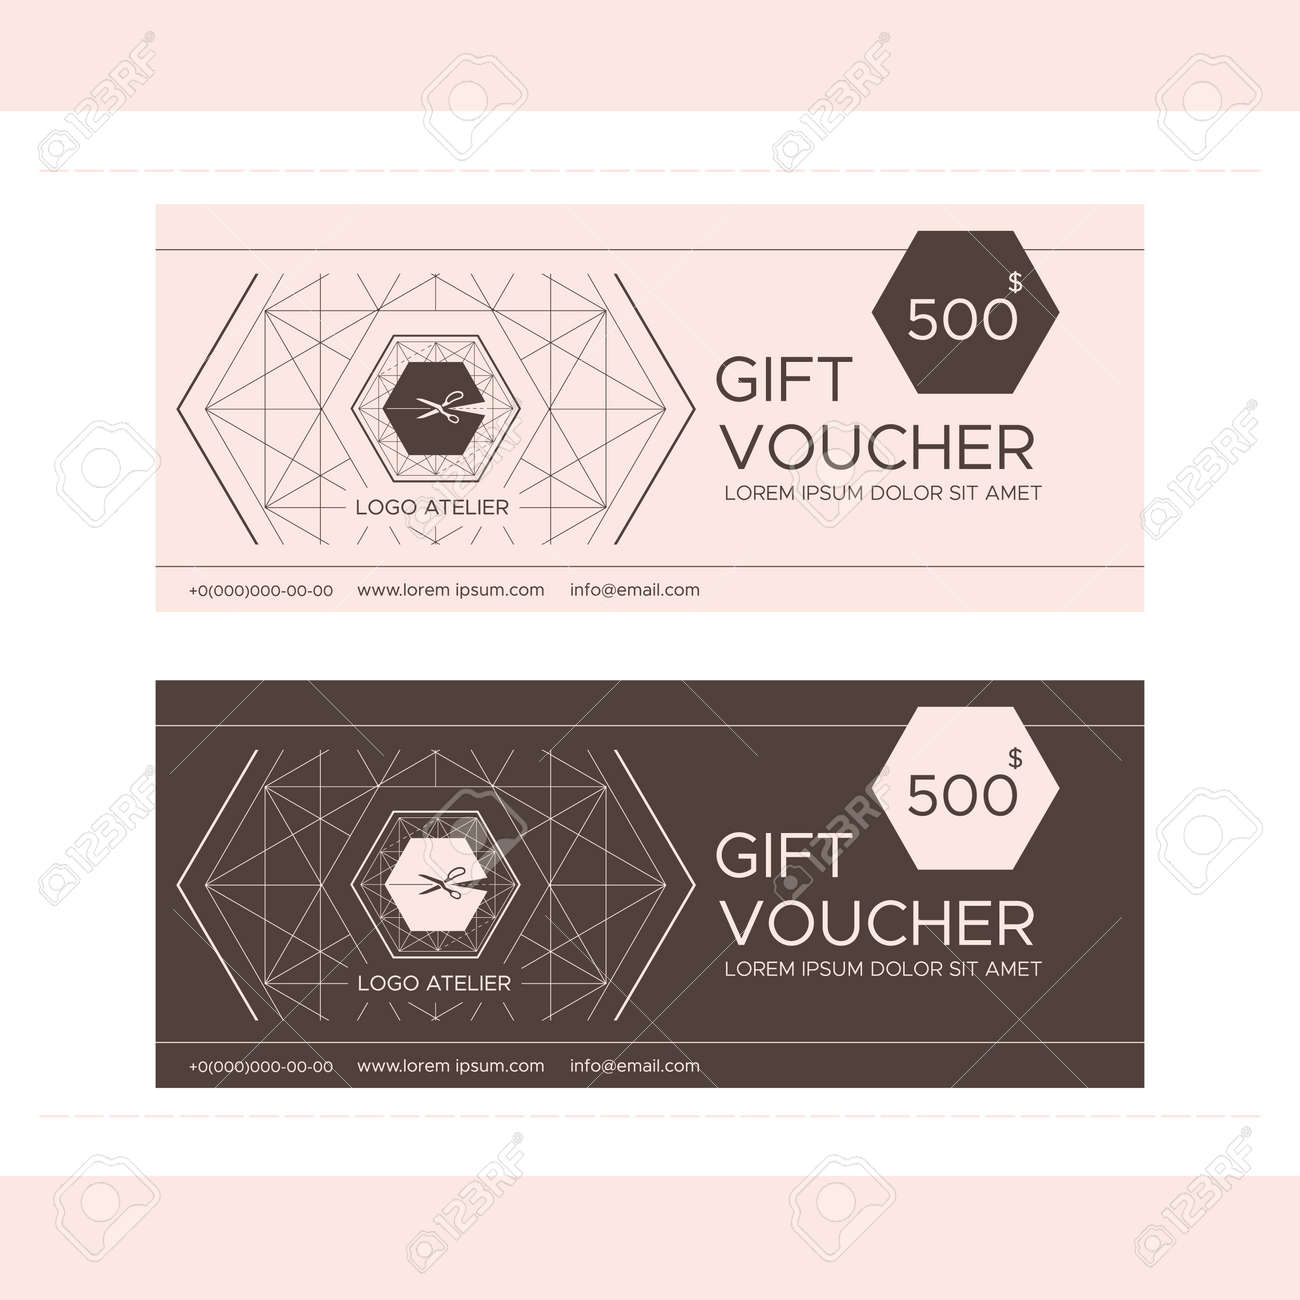 Branding For Tailor Shop Dressmakers Salon Sewing Studio Clothing Royalty Free Cliparts Vectors And Stock Illustration Image 89617946